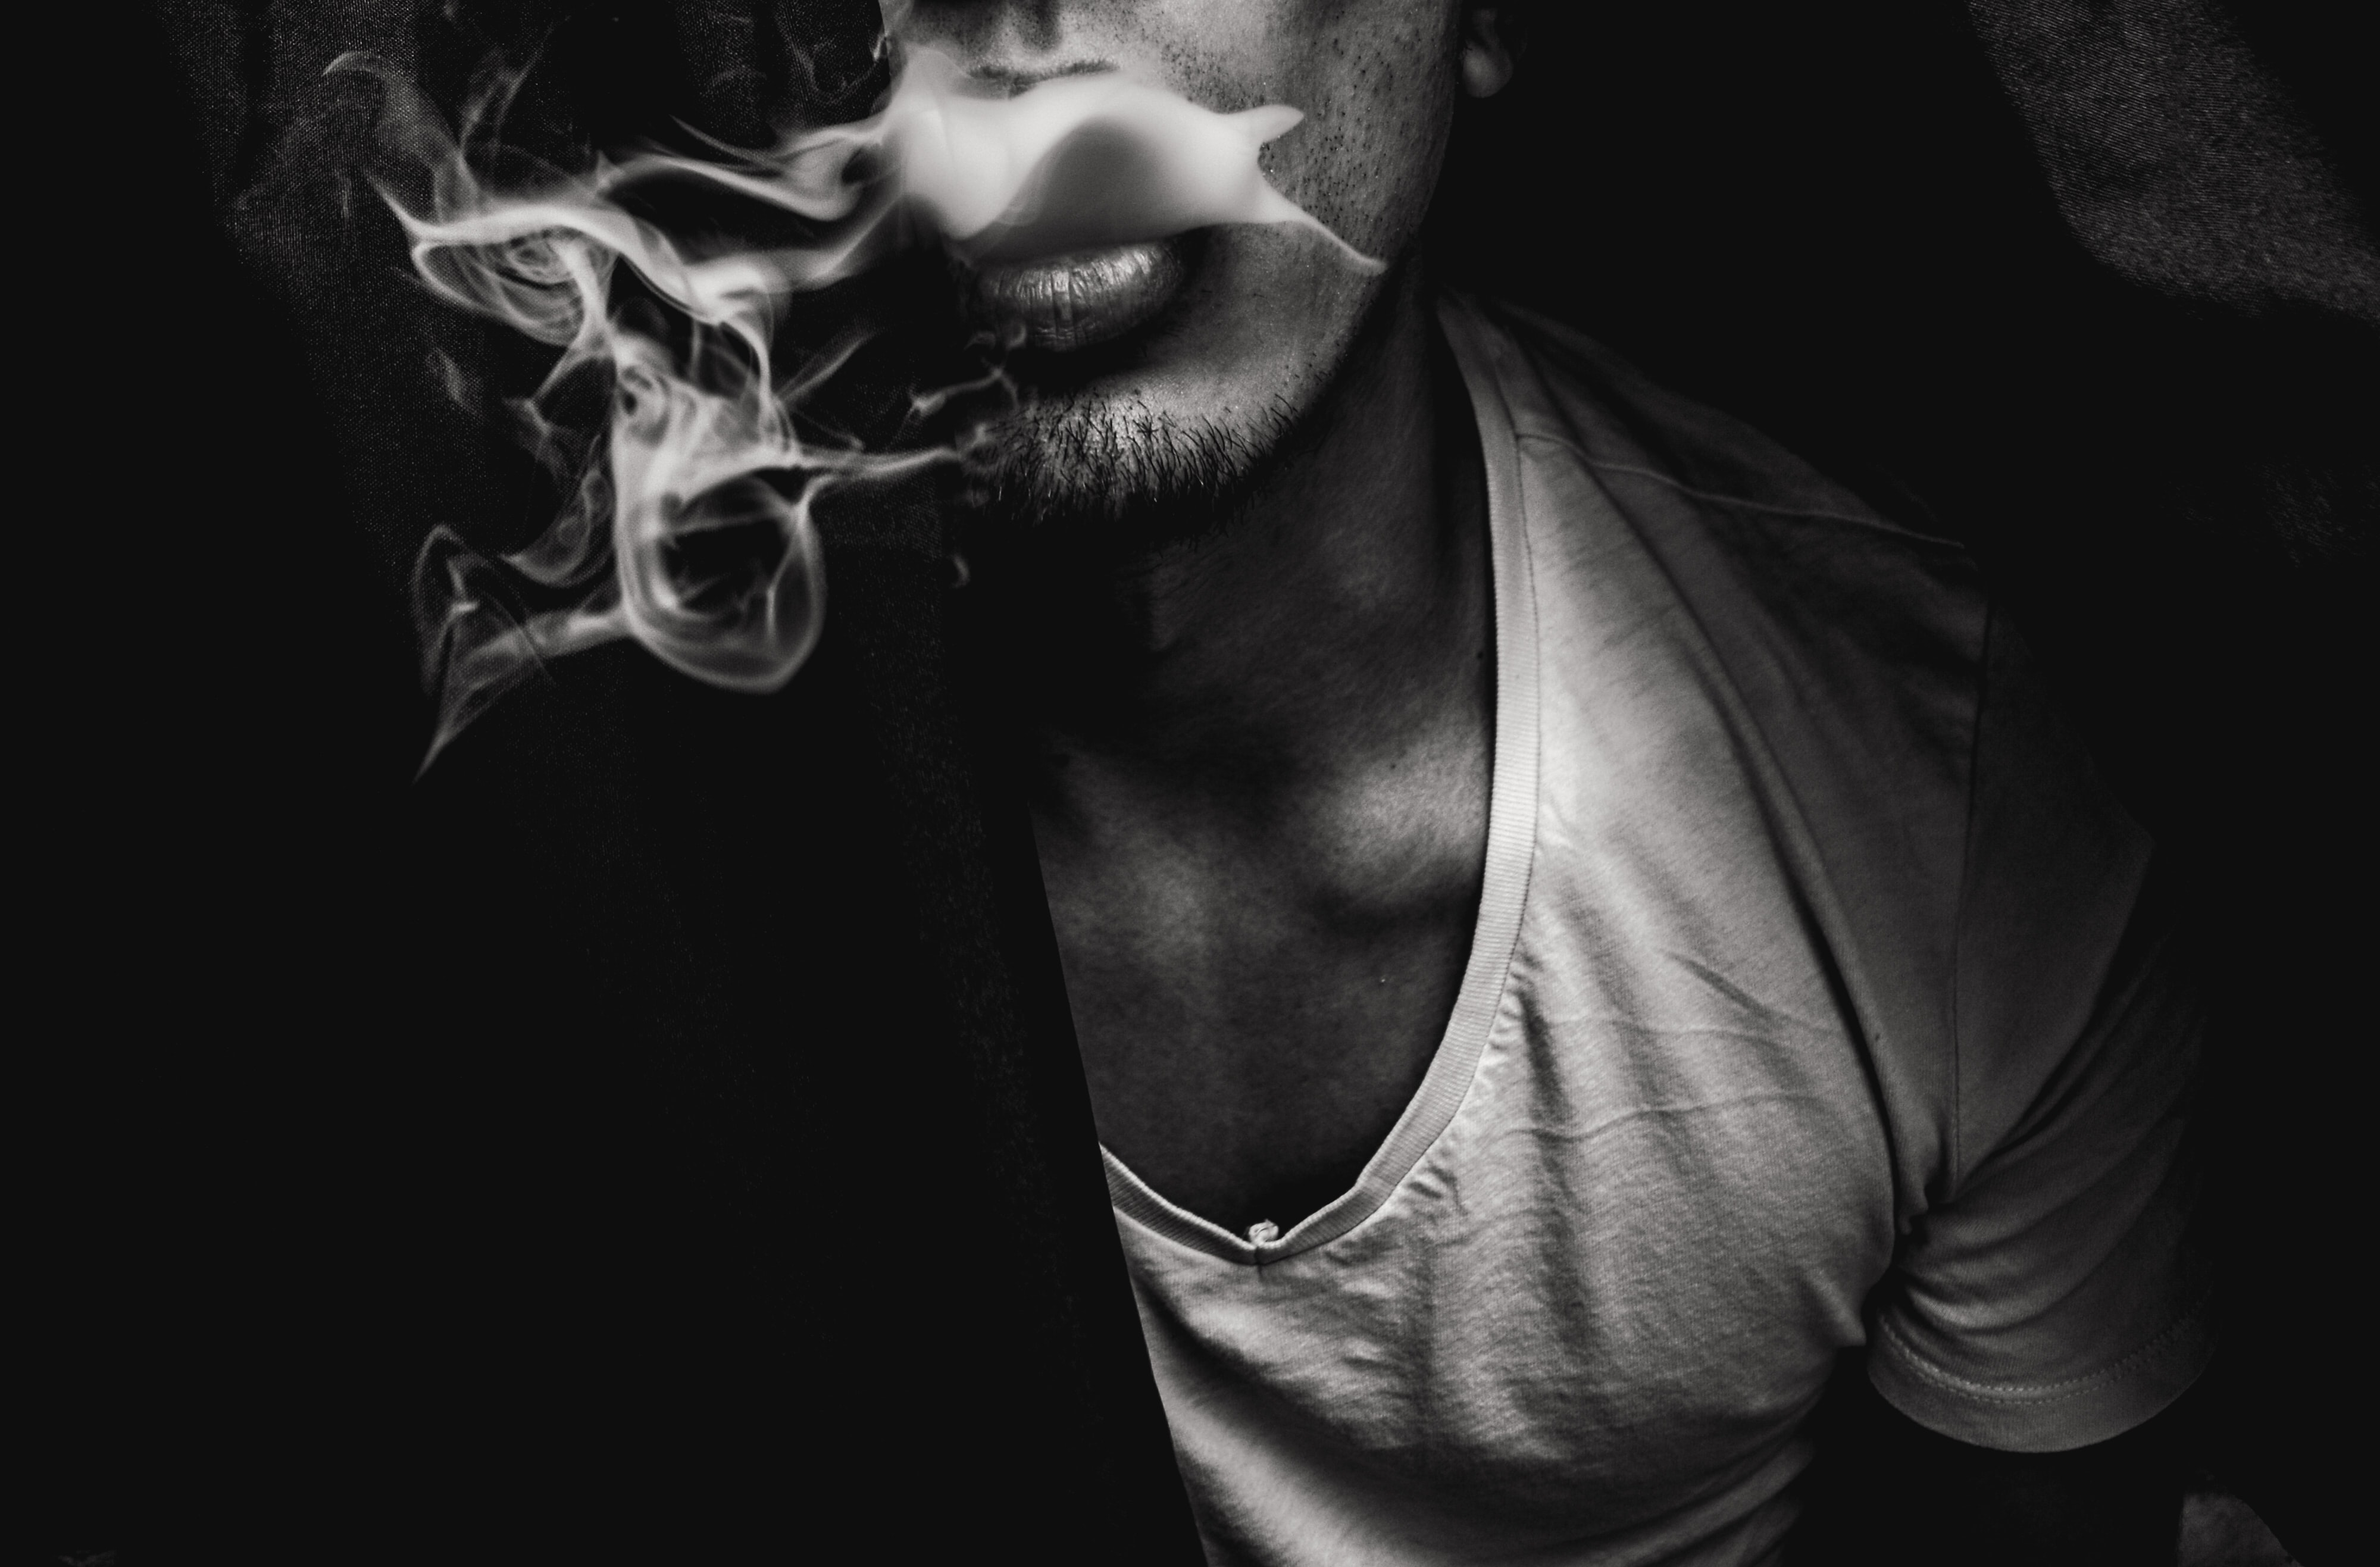 man wearing white V-neck shirt with smoke coming out of mouth